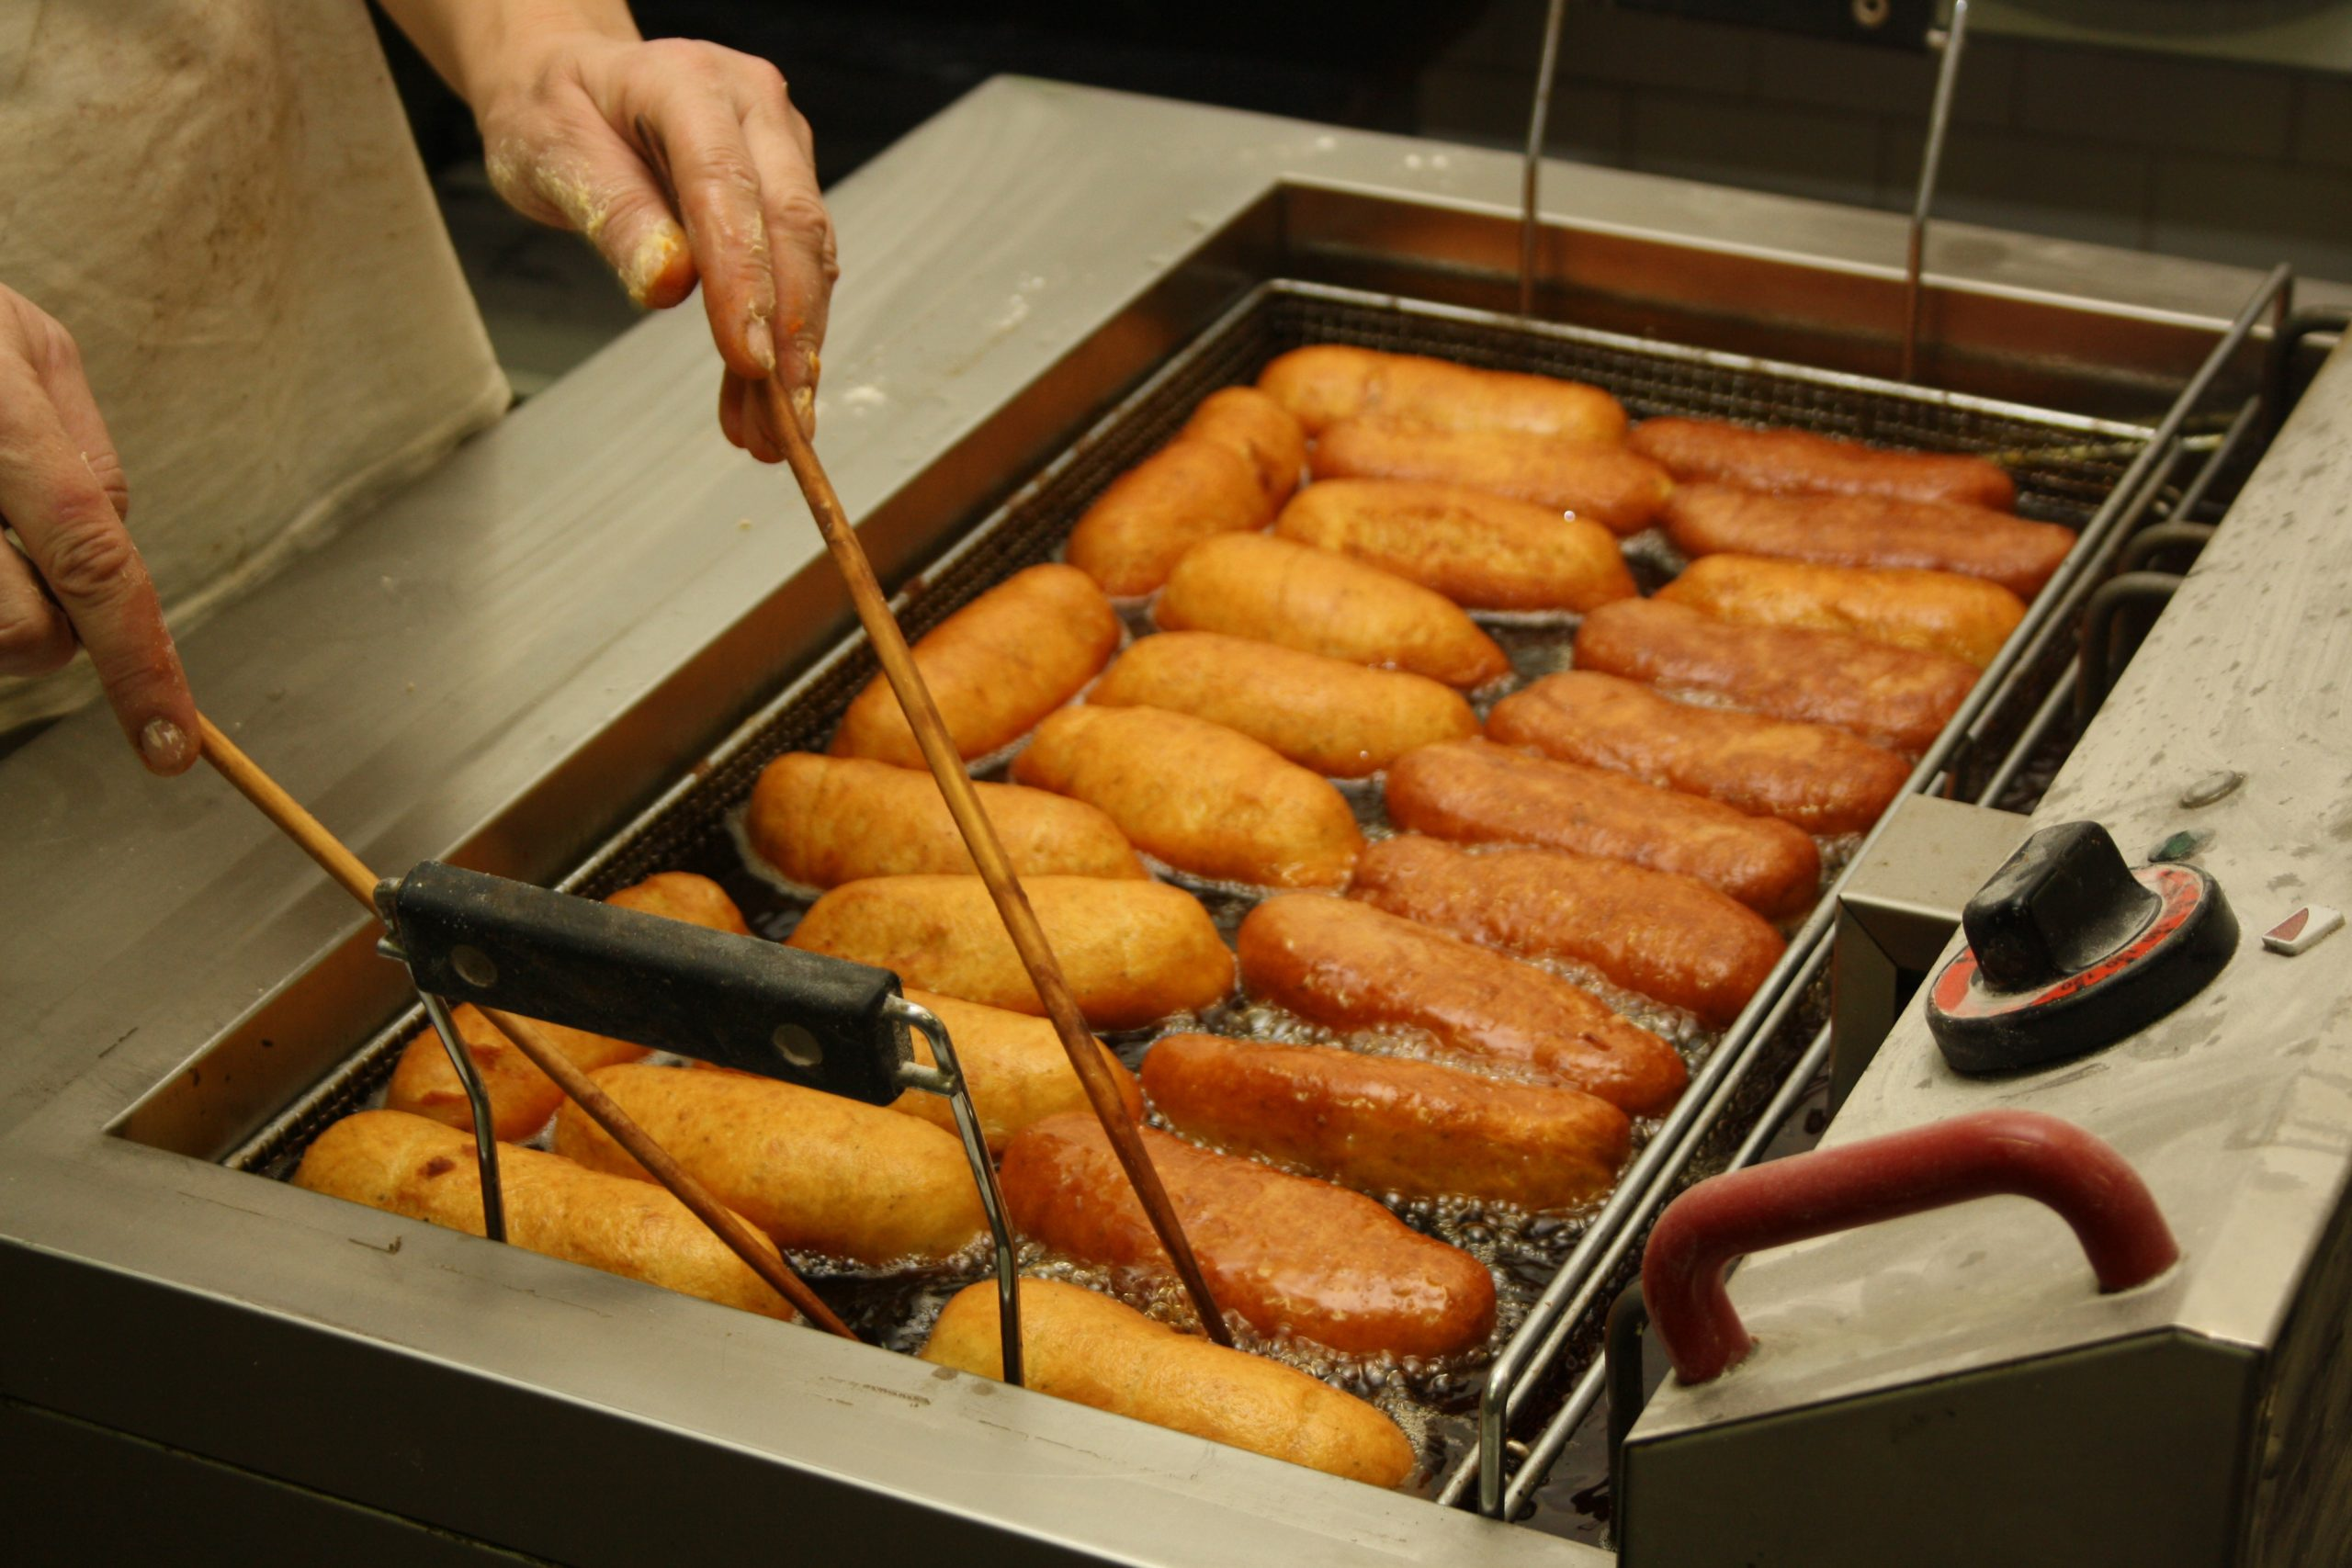 THE WHO LOOKING TO BAN ARTIFICIAL TRANS FATS